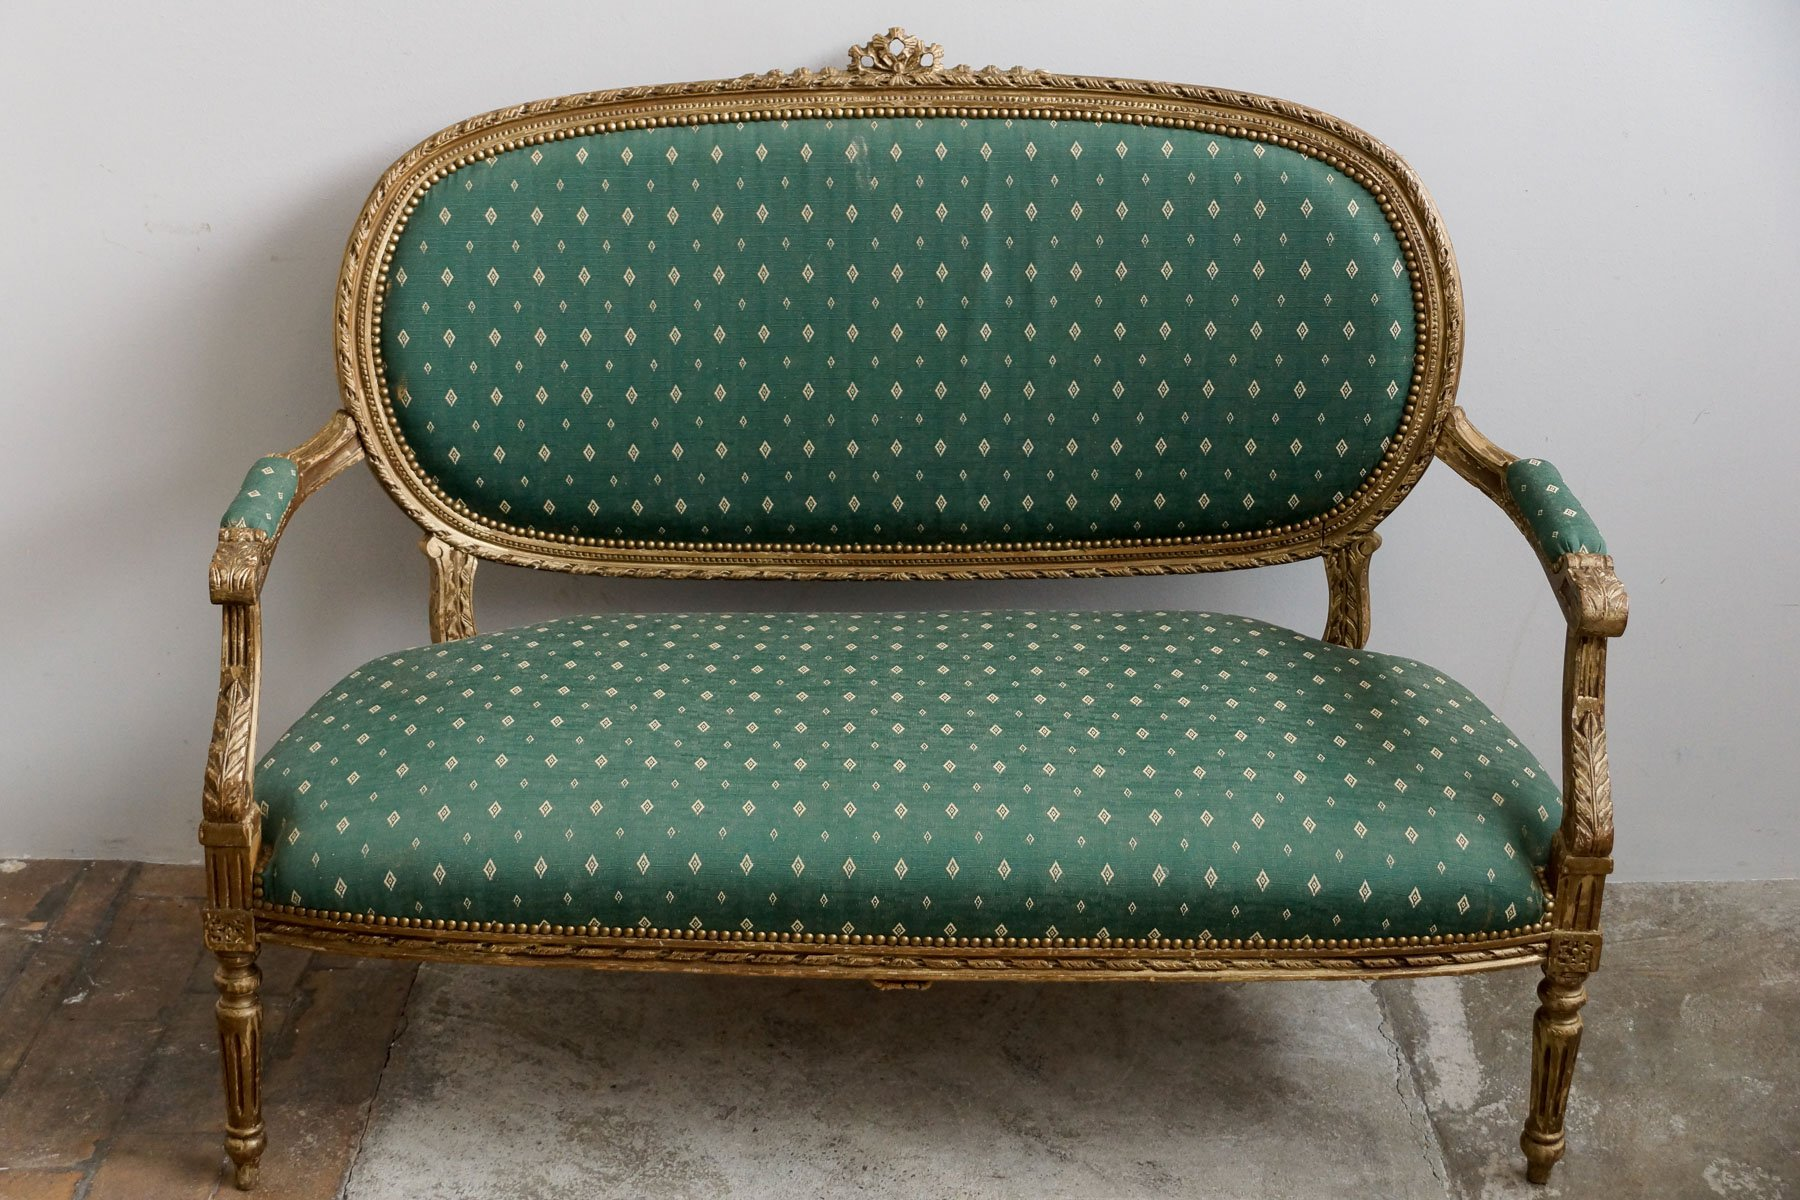 Louis XVI Style Two Seater Sofa with Armrests  1850s for sale at PamonoLouis XVI Style Two Seater Sofa with Armrests  1850s for sale at  . Louis Xvi Style Furniture For Sale. Home Design Ideas